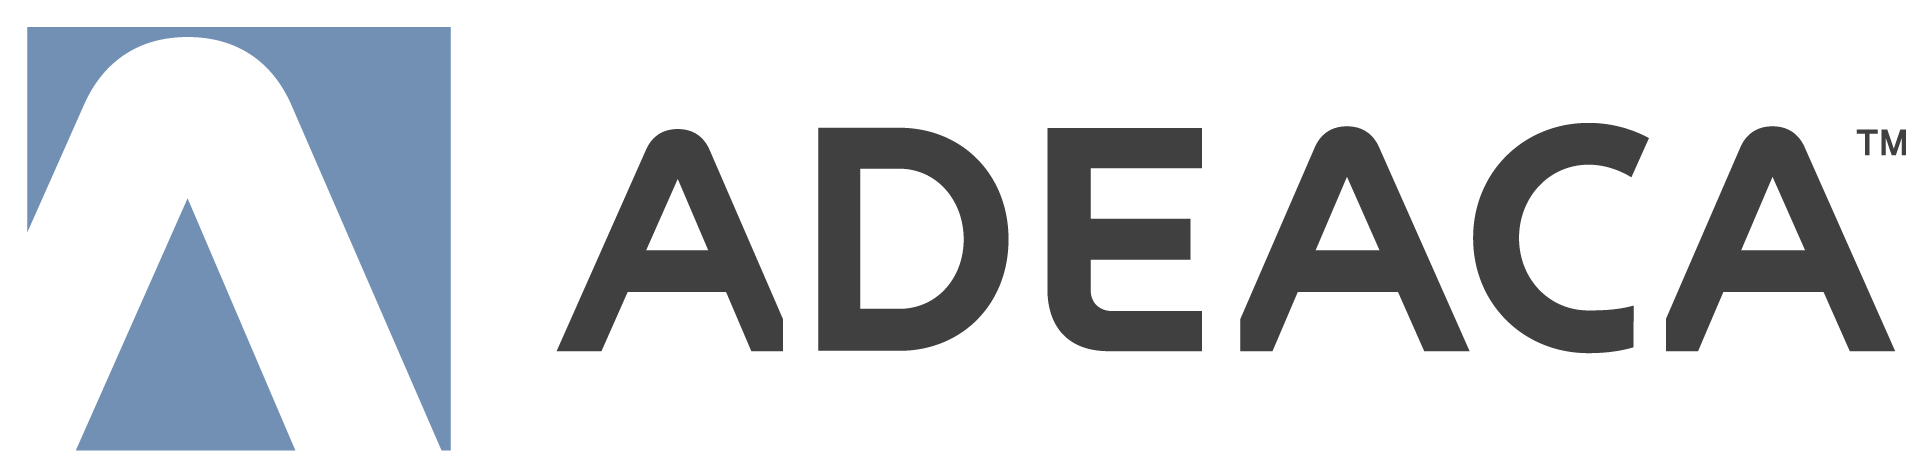 Adeaca Ends ETO Paradigm in Favor of Project Business Automation